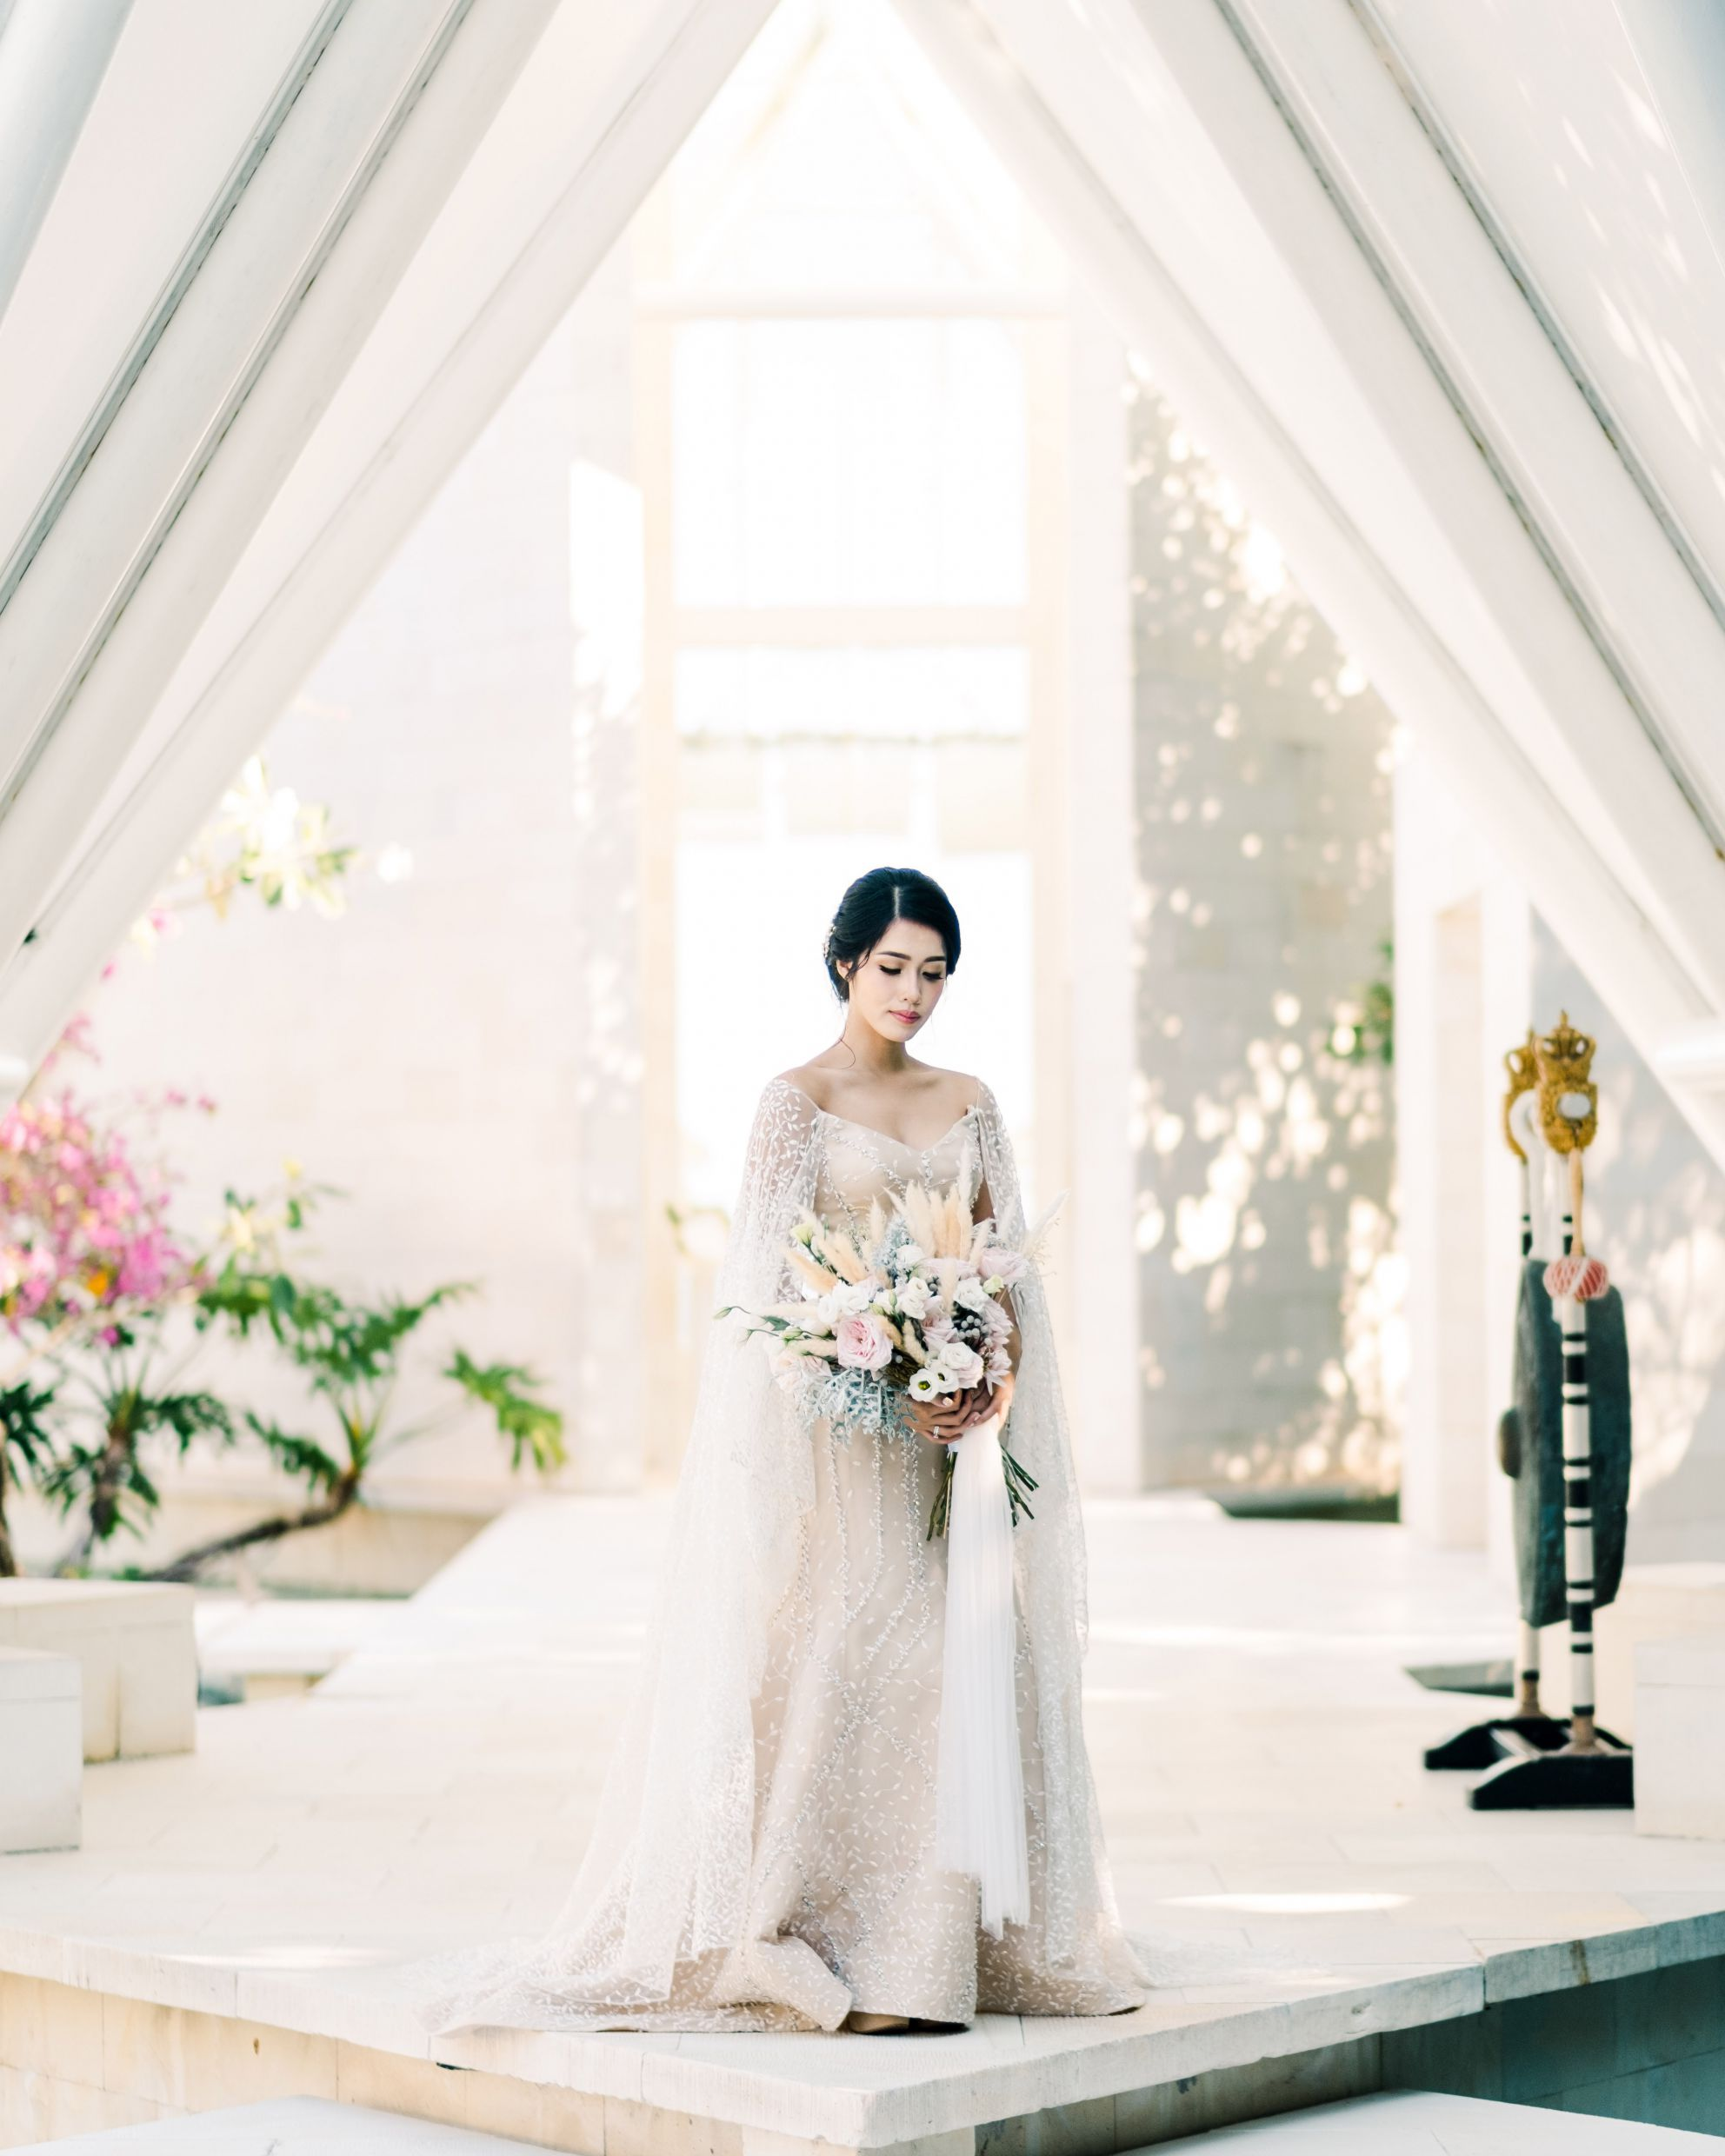 bali wedding of ana octarina and adie baron